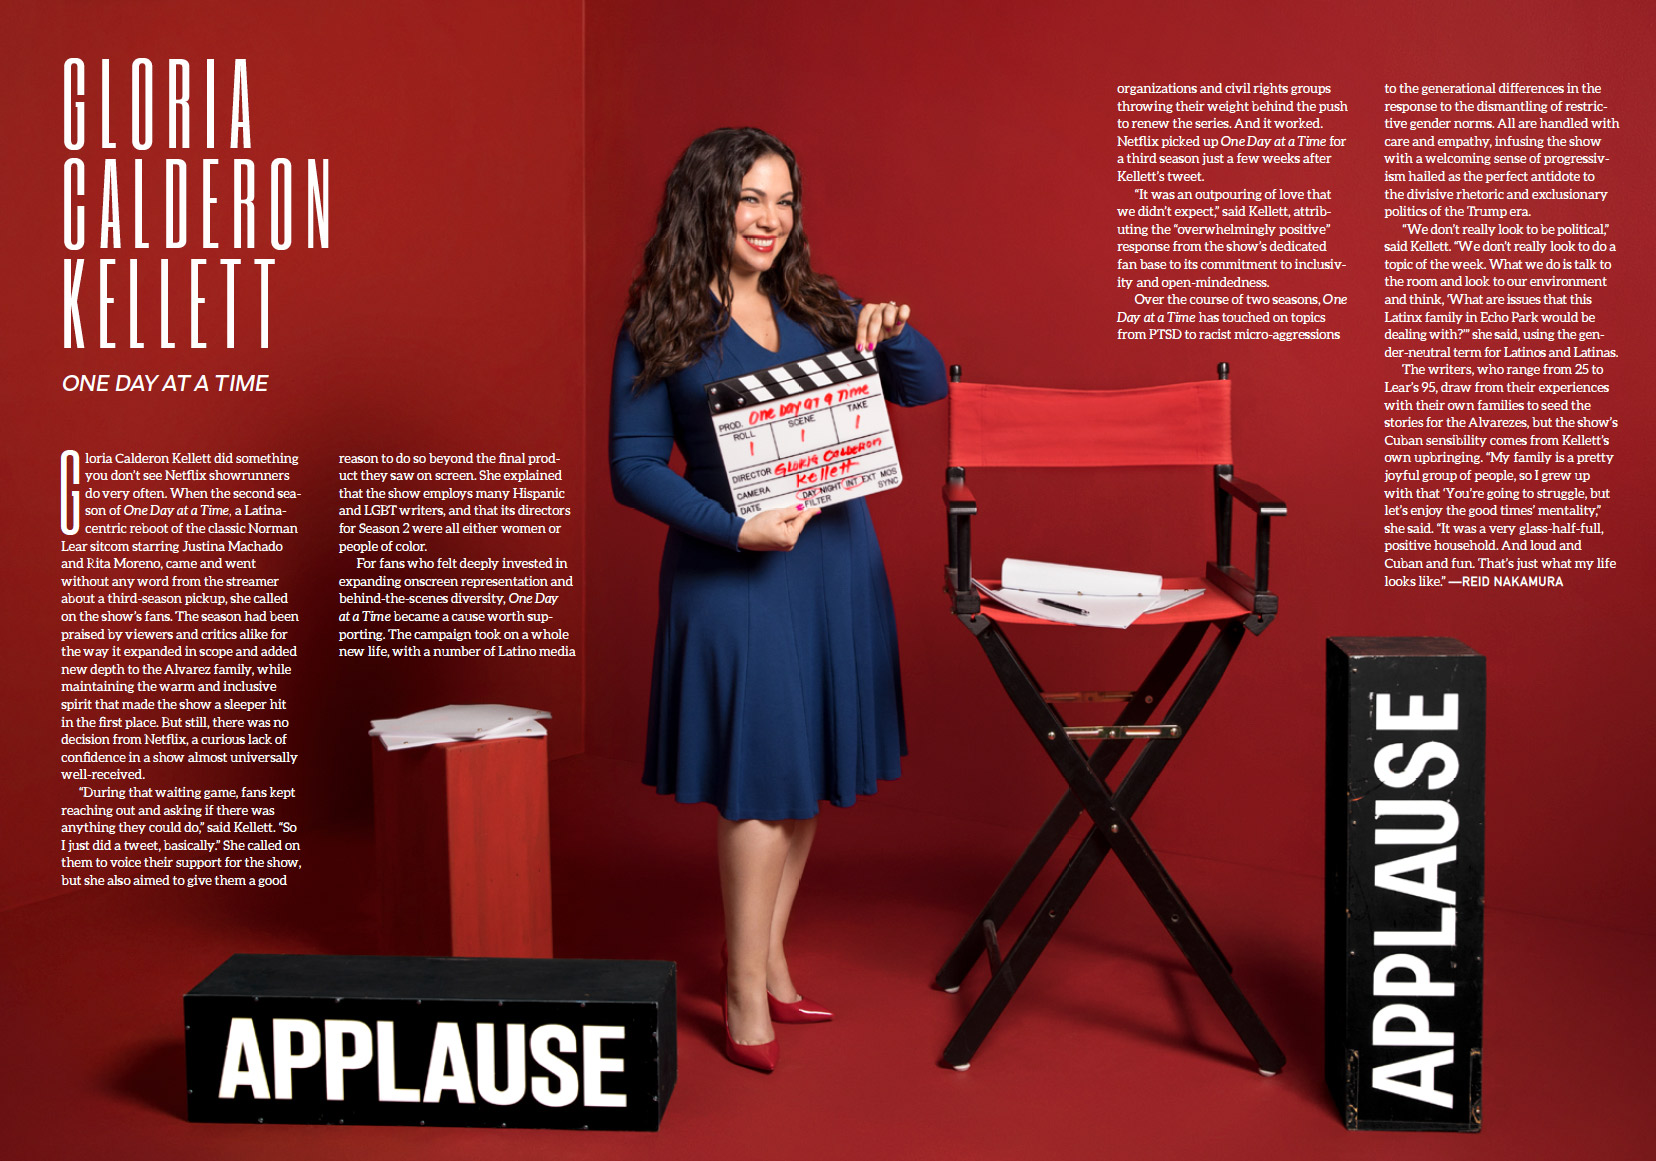 GLORIA-CALDERON-THE-WRAP-tear-sheet